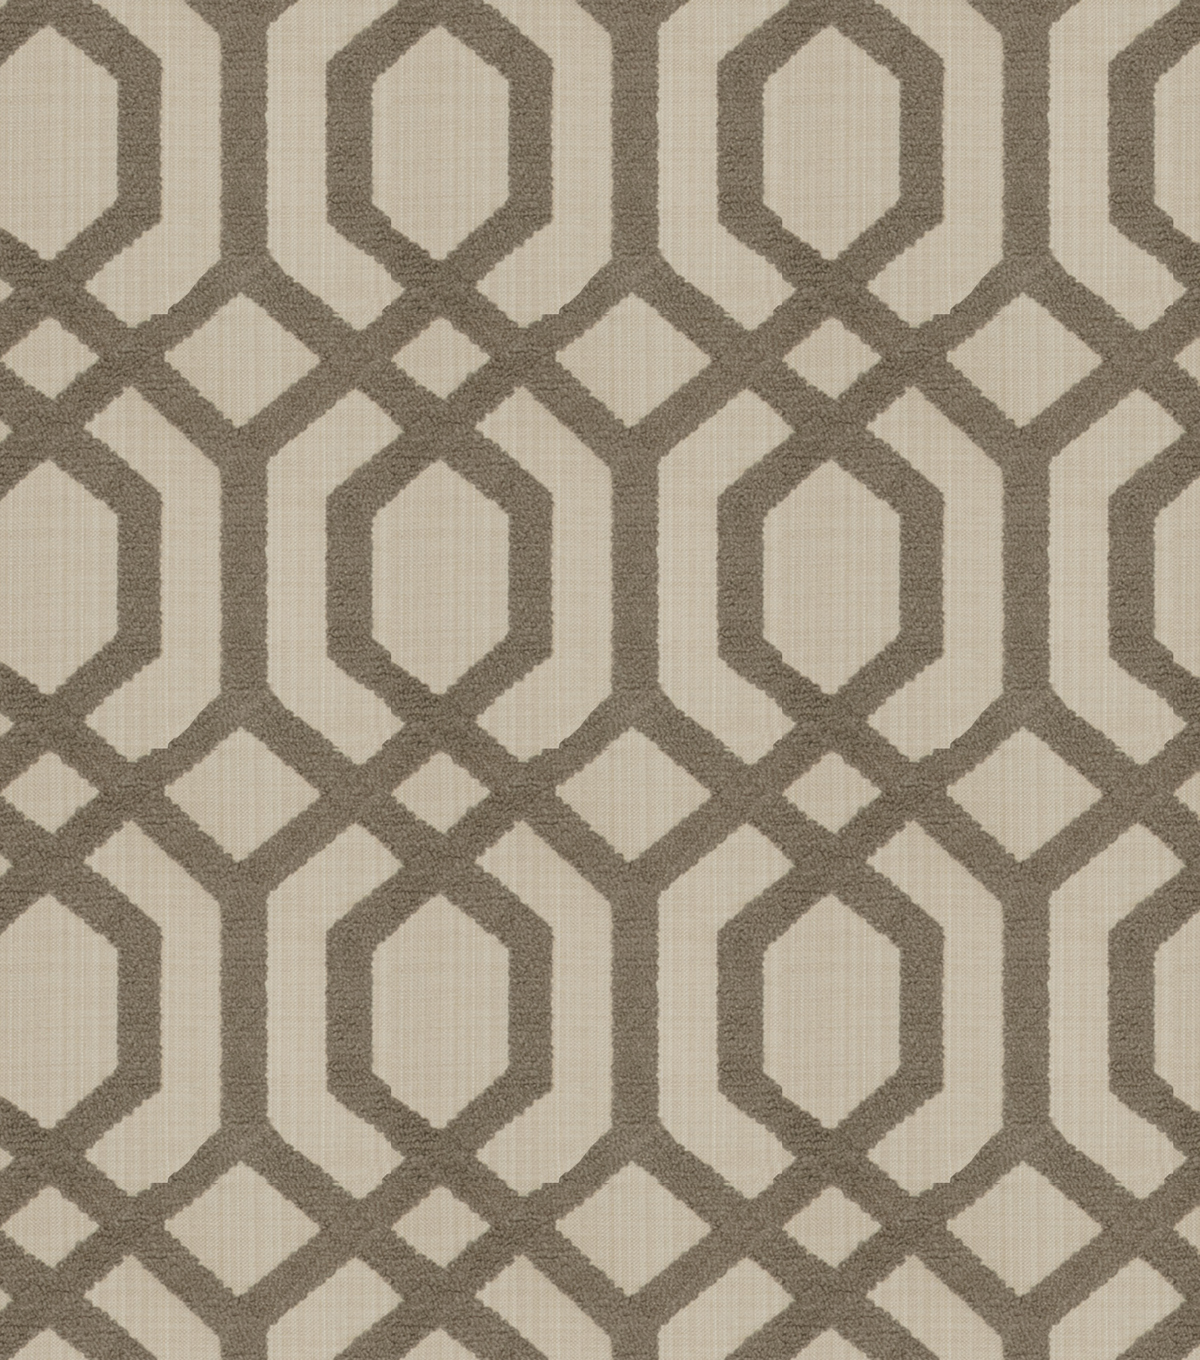 Home Decor 8x8 Fabric Swatch-Eaton Square Hummer Pewter